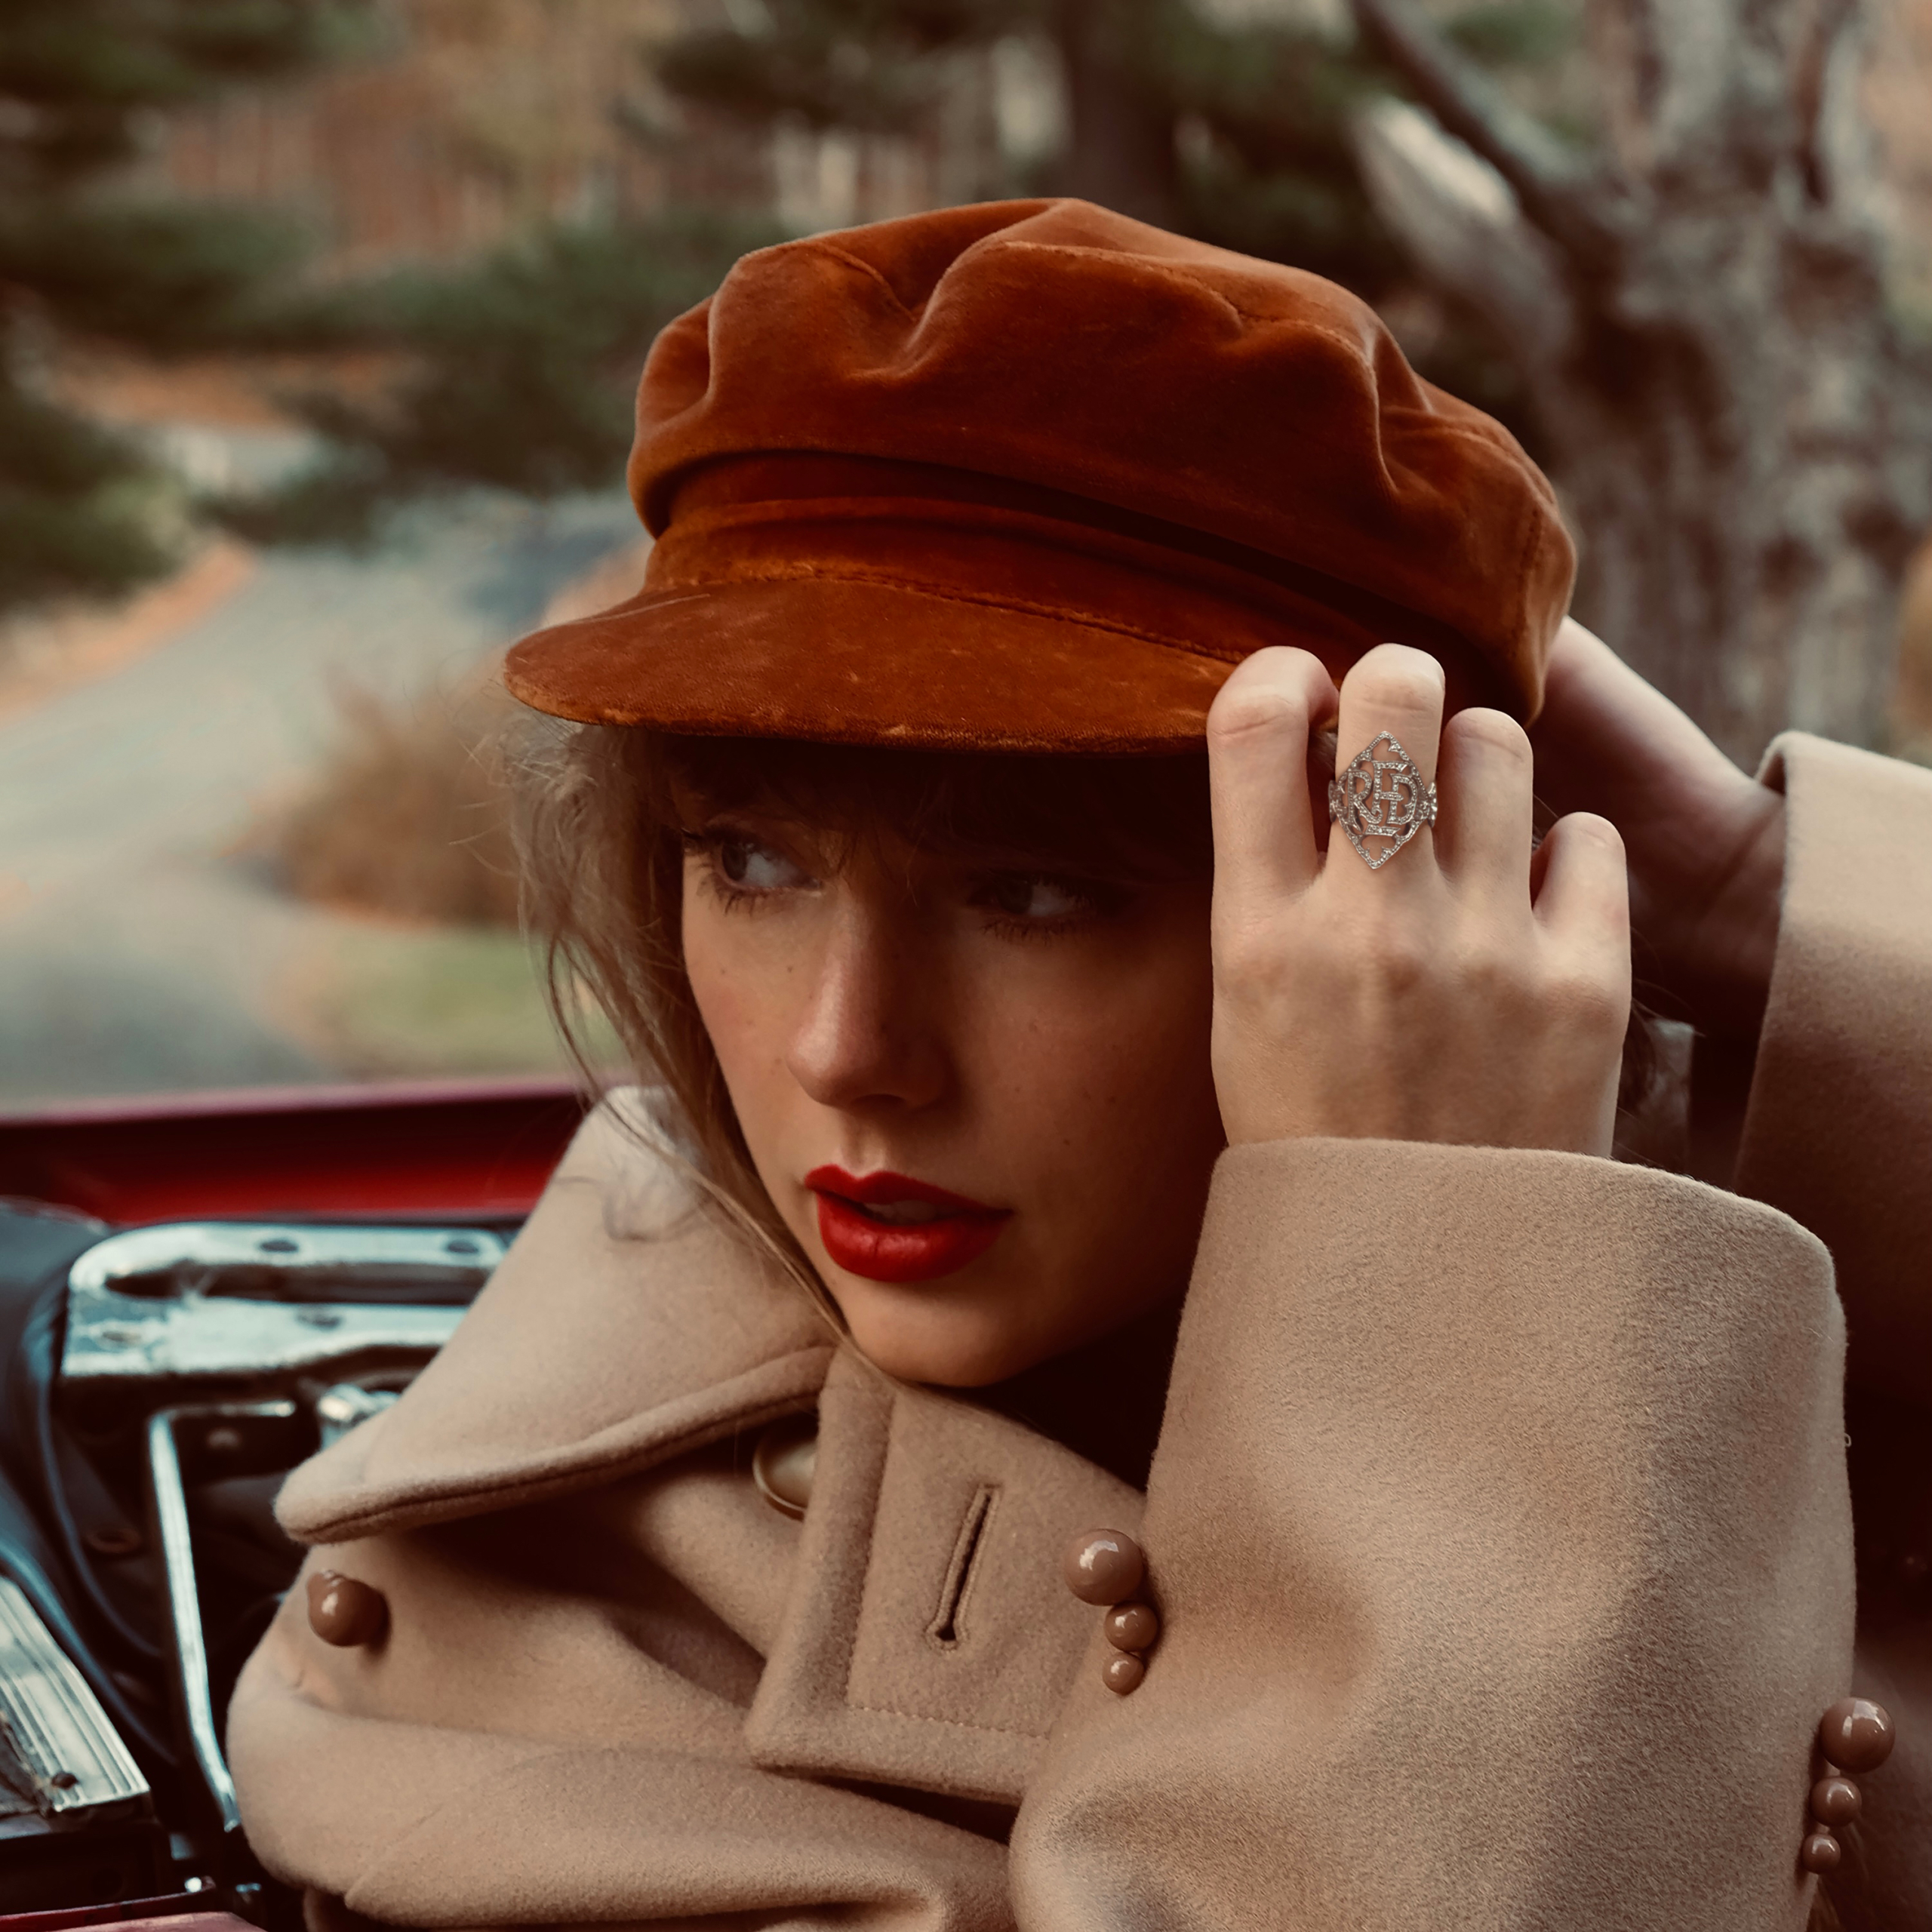 RED (Taylor's Version) [Republic Records, 2021]